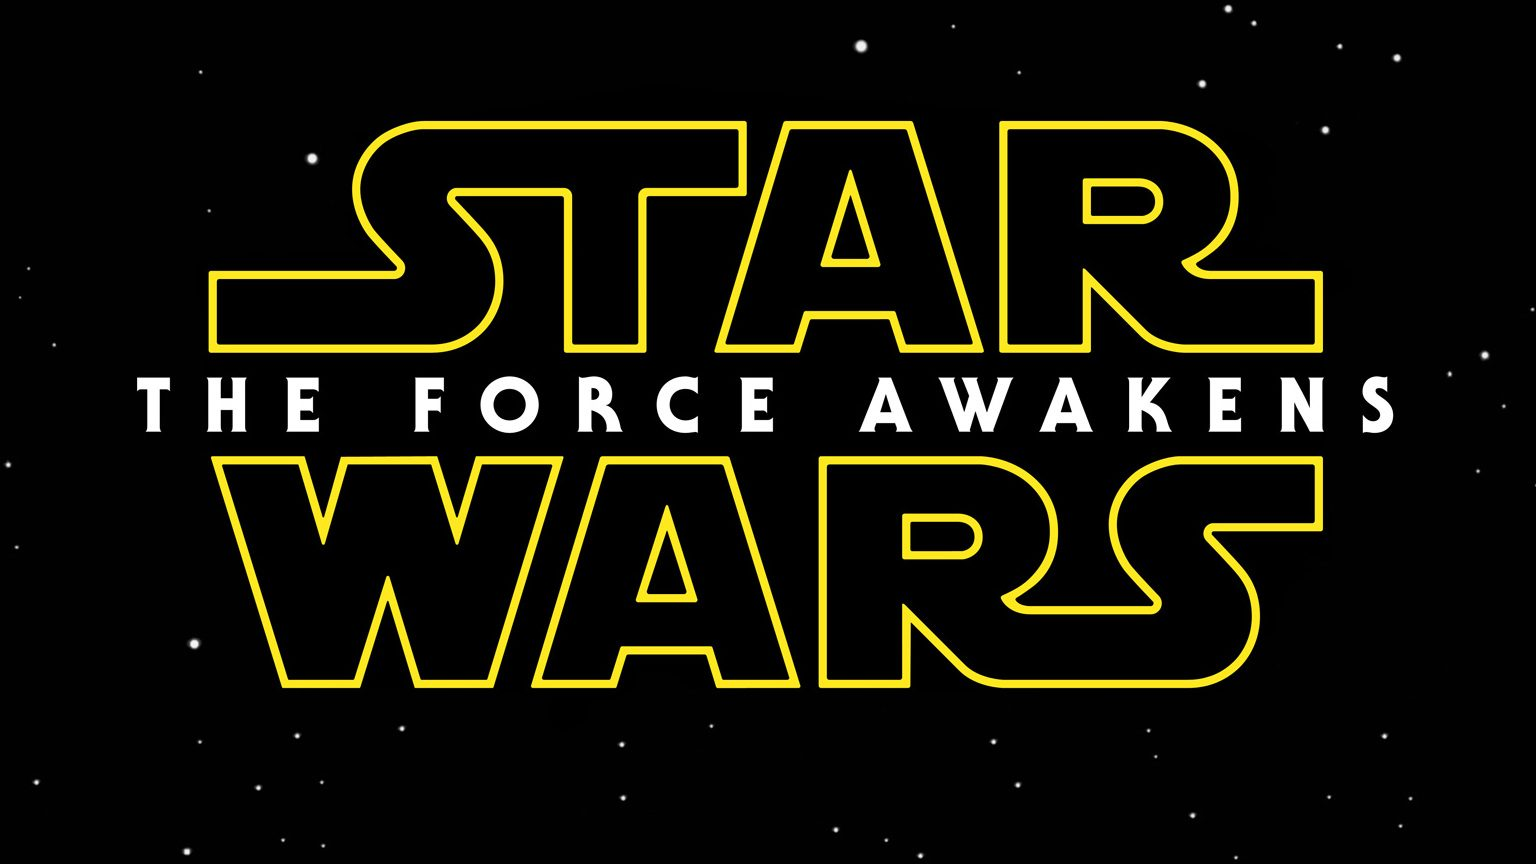 'The Force Awakens' Will be the Only IMAX Movie for A Month